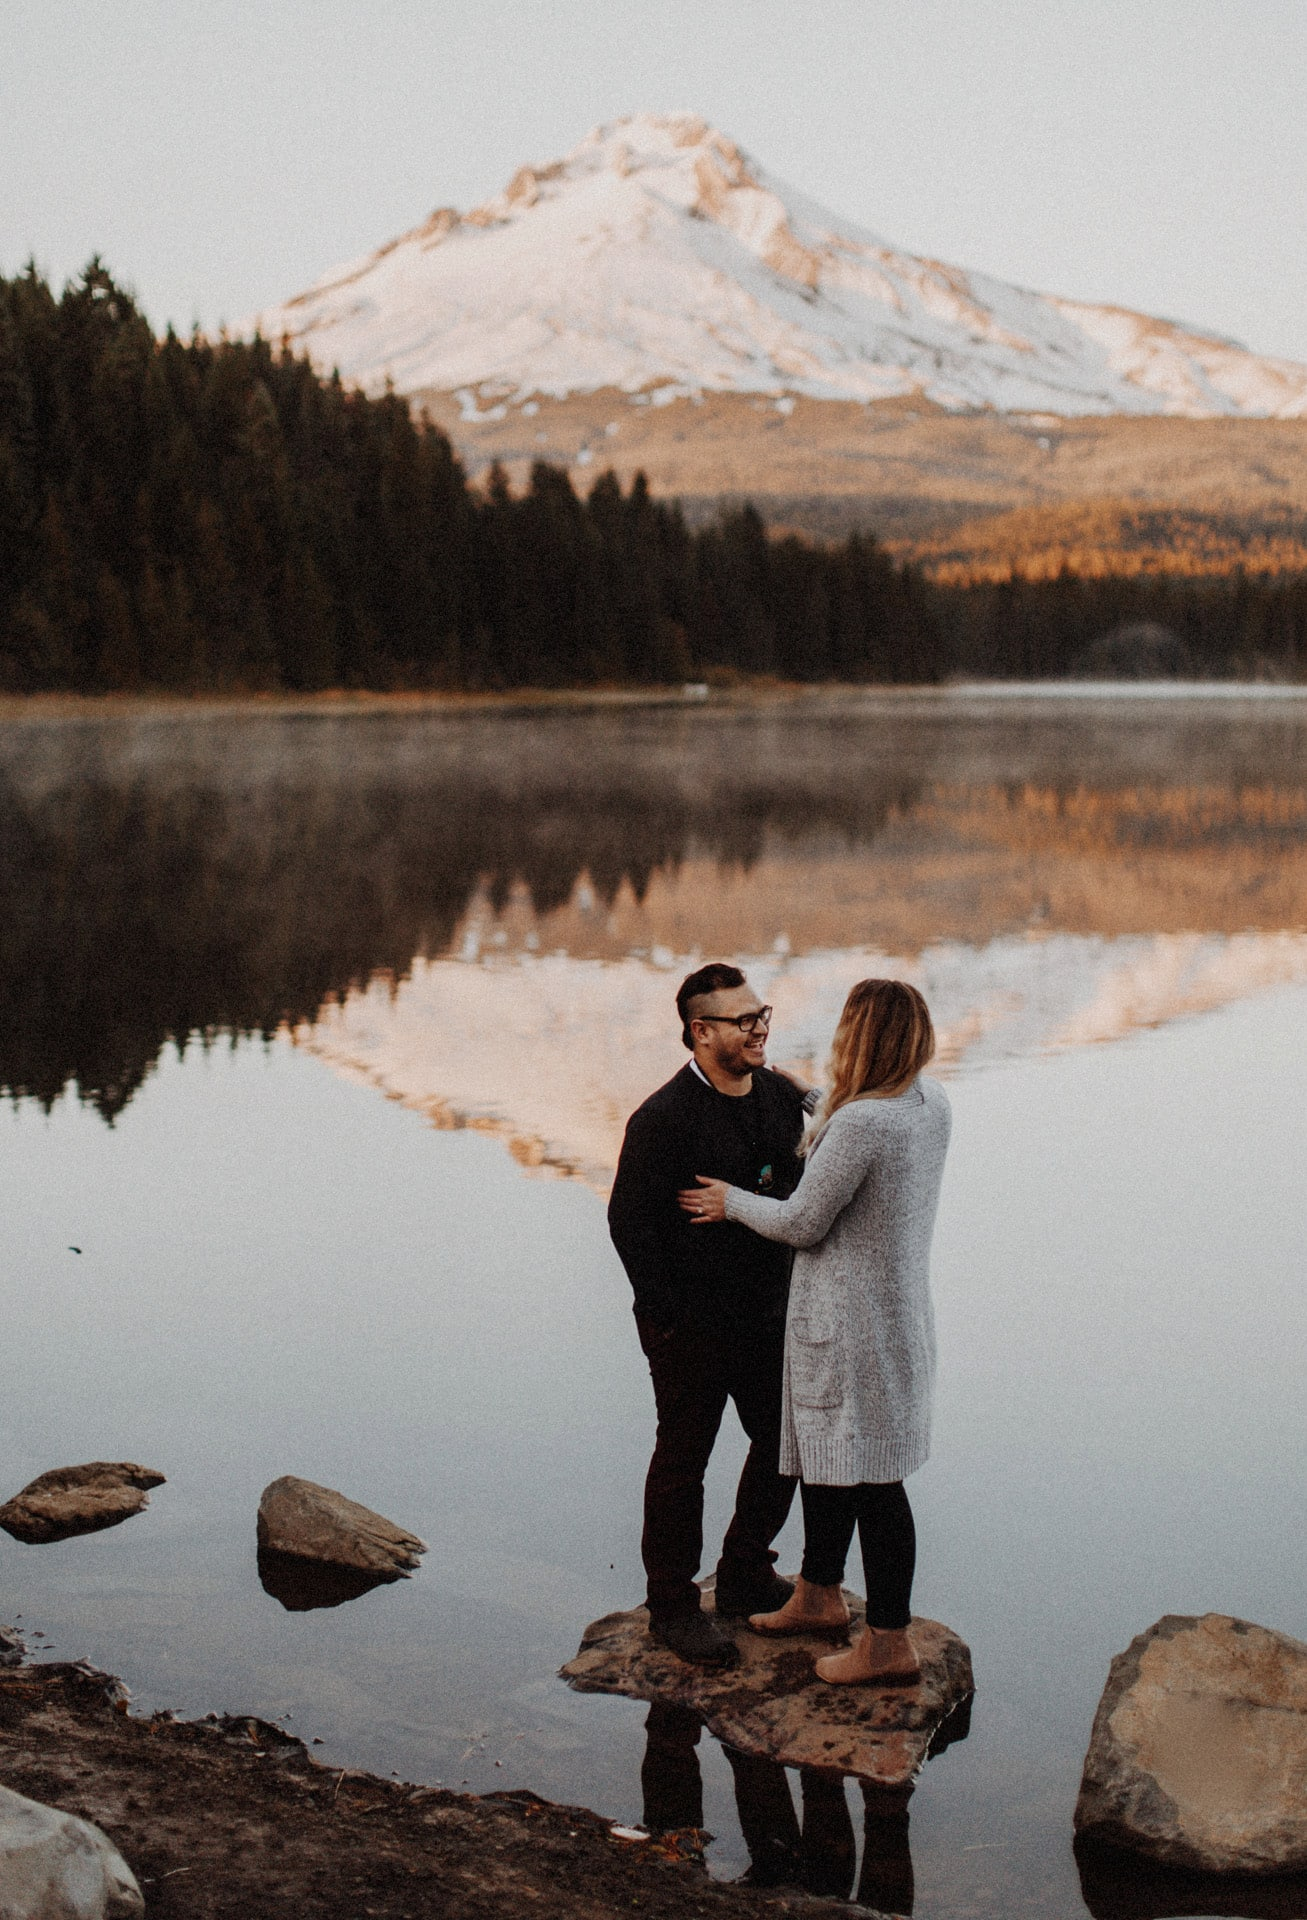 A Couple together in front of Trillium lake looking out at Mount hood